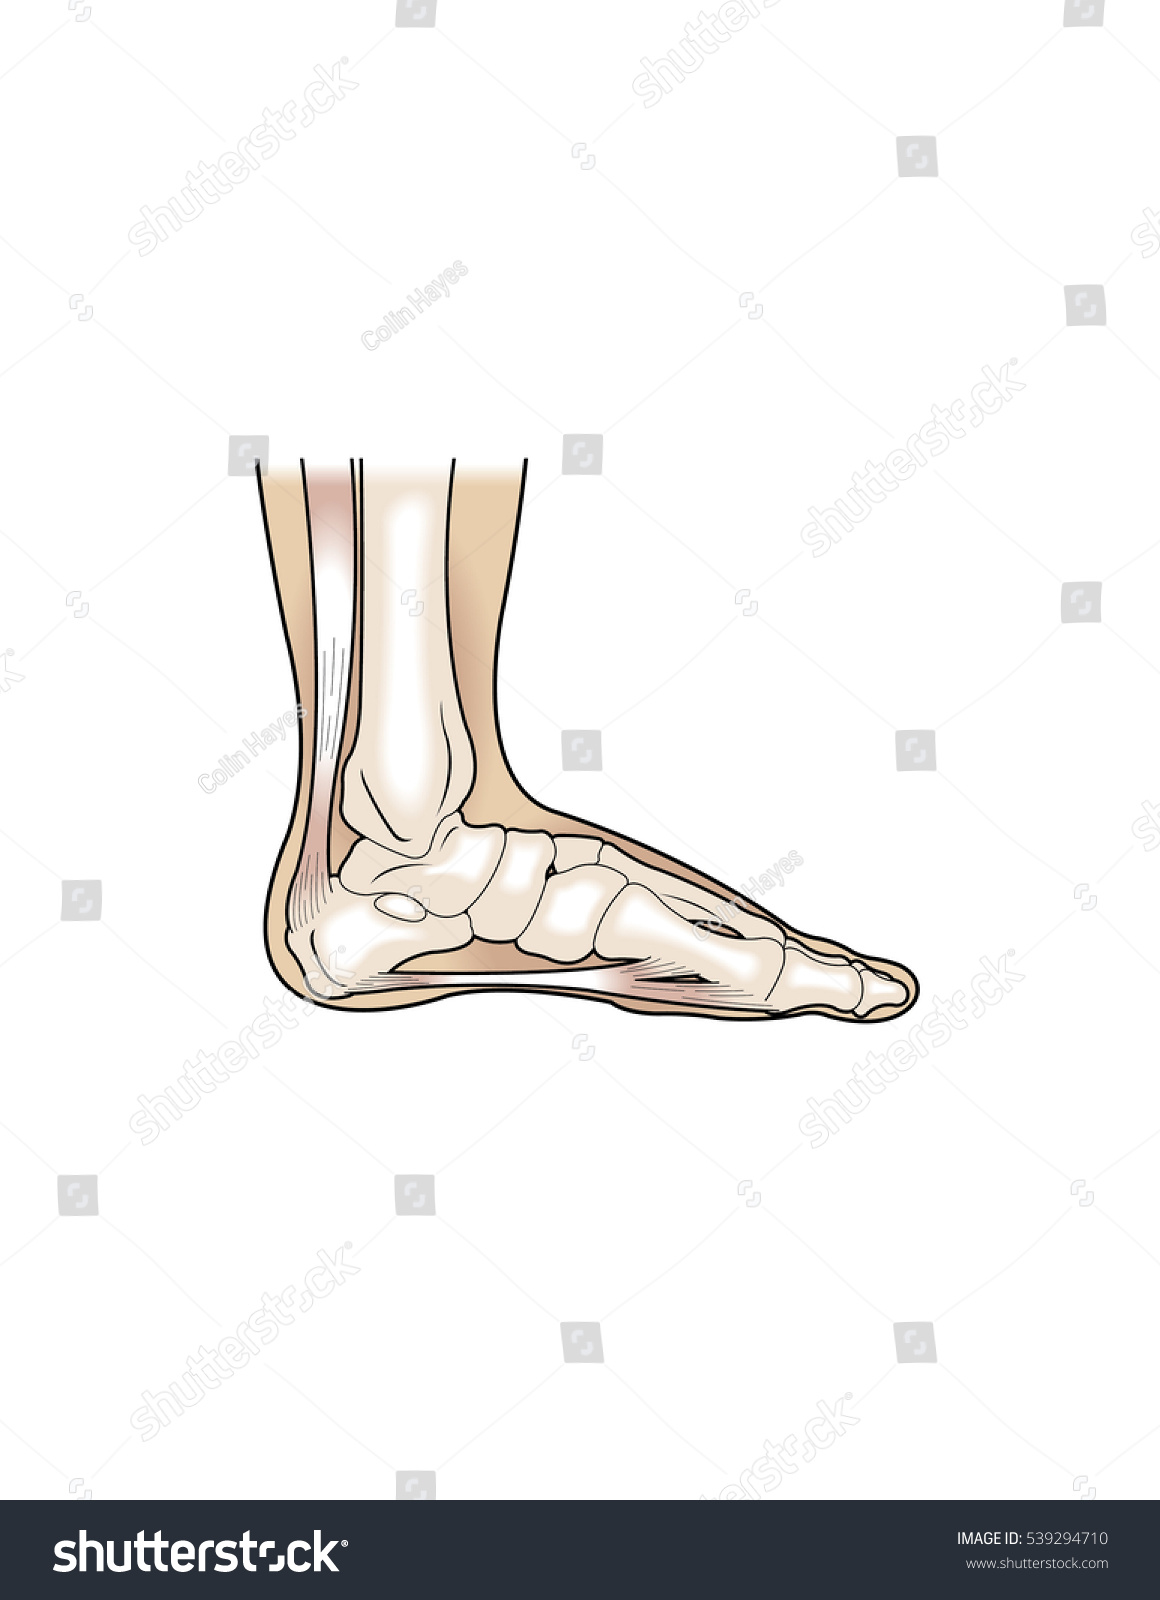 Cross Section Human Foot Showing Bones Stock Vector Royalty Free